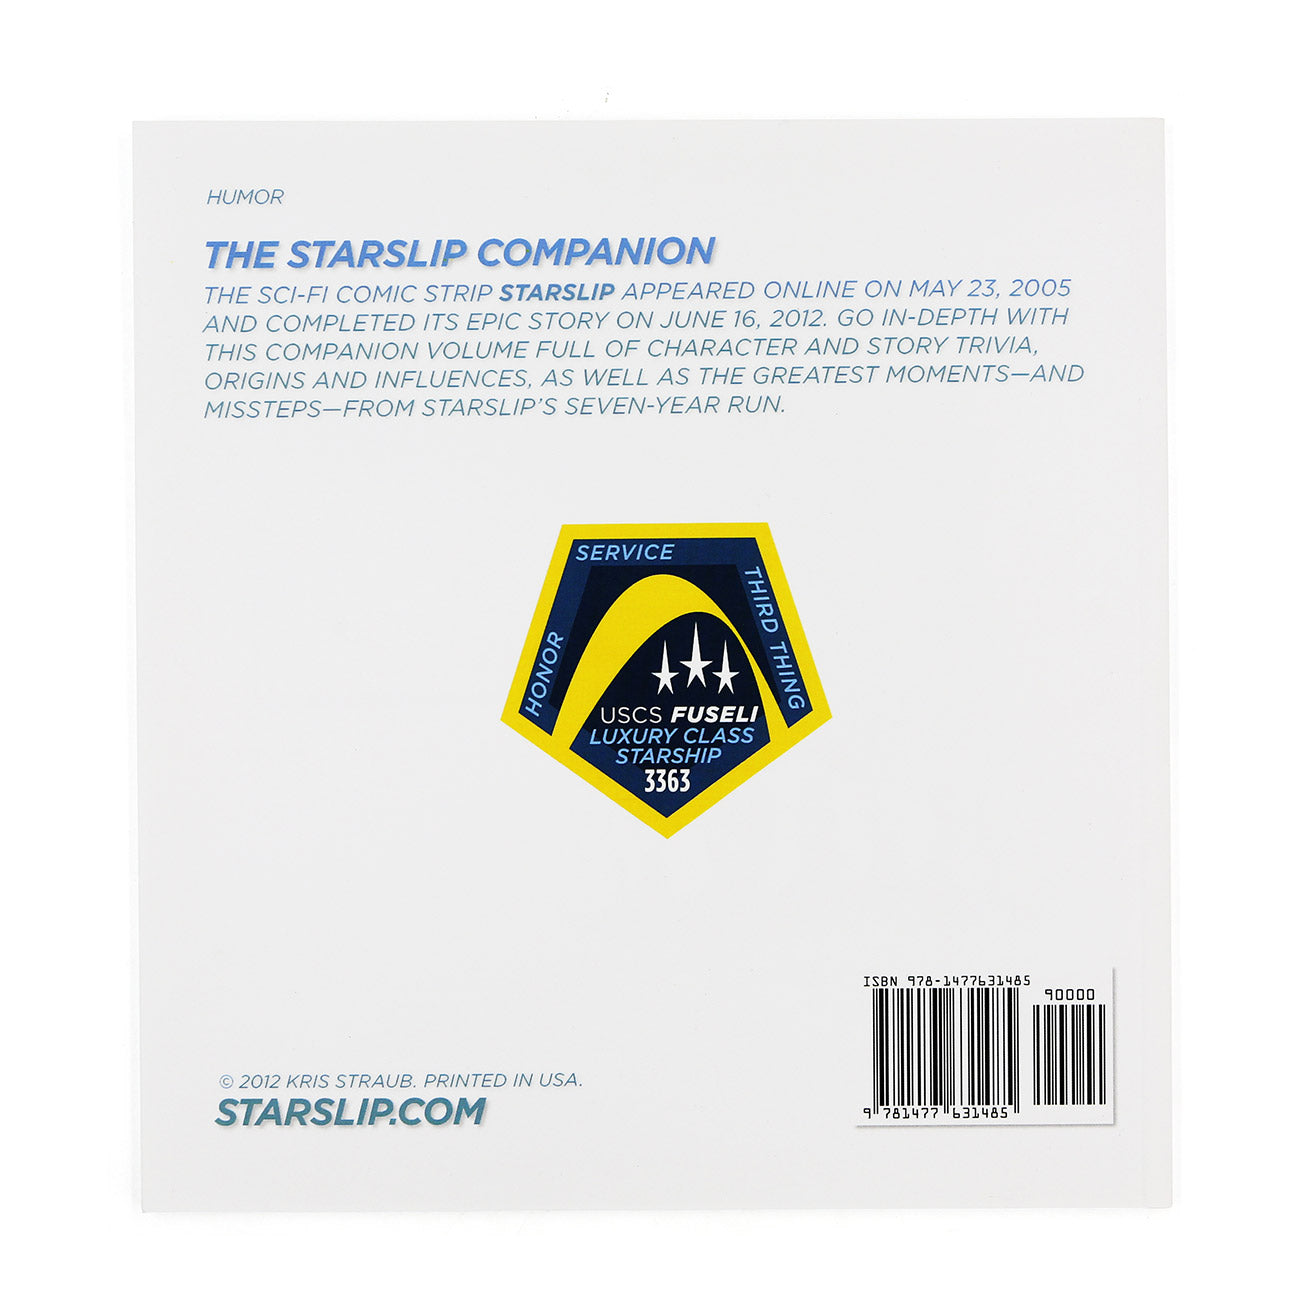 The Starslip Companion